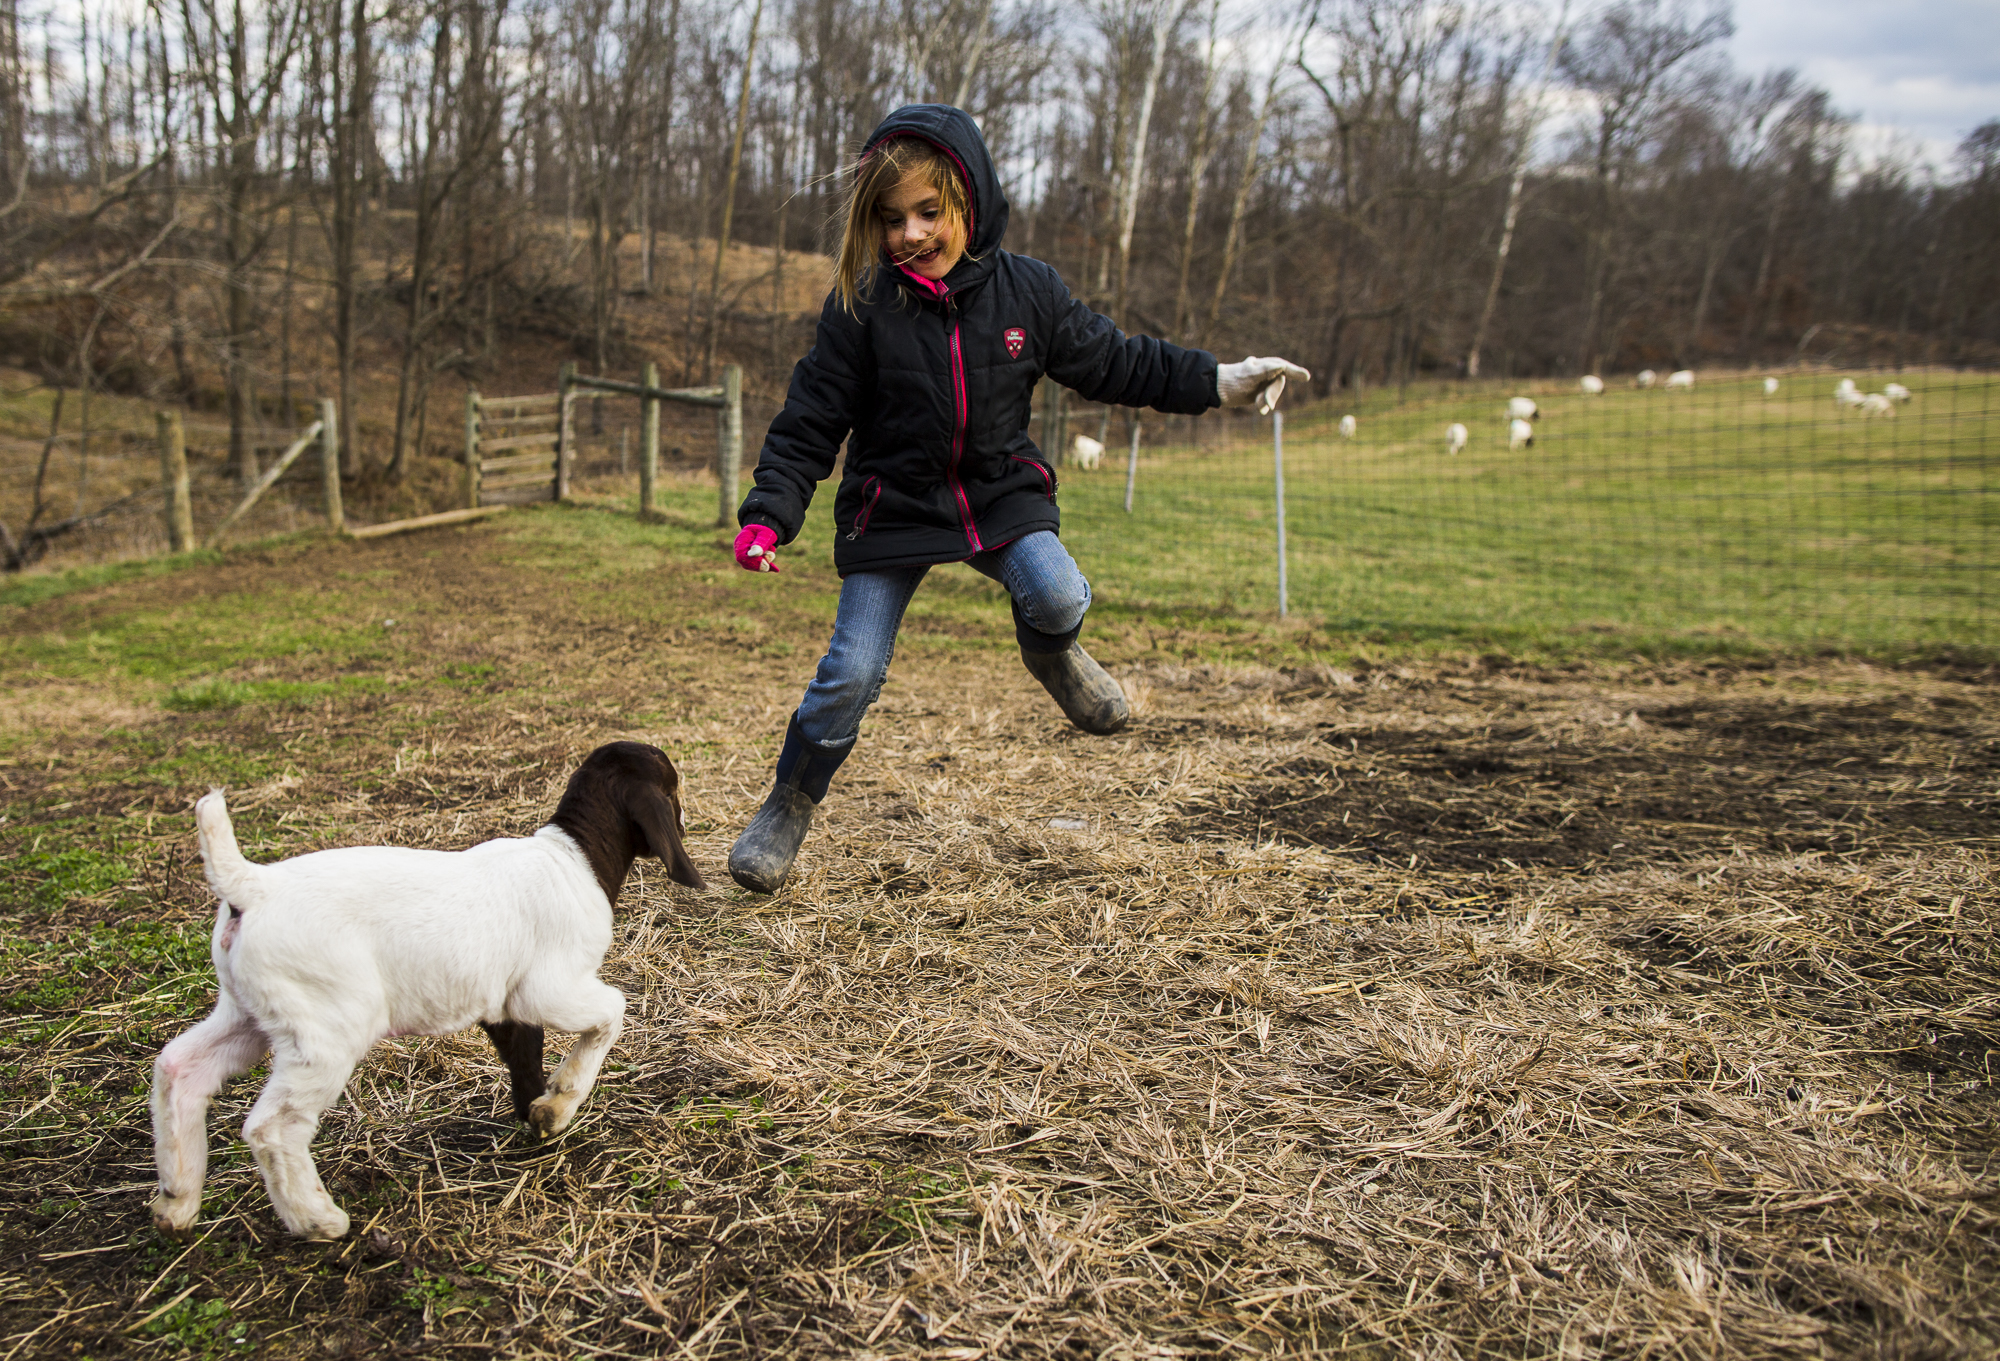 Emily plays with Grace, a preemie goat born about two weeks early.